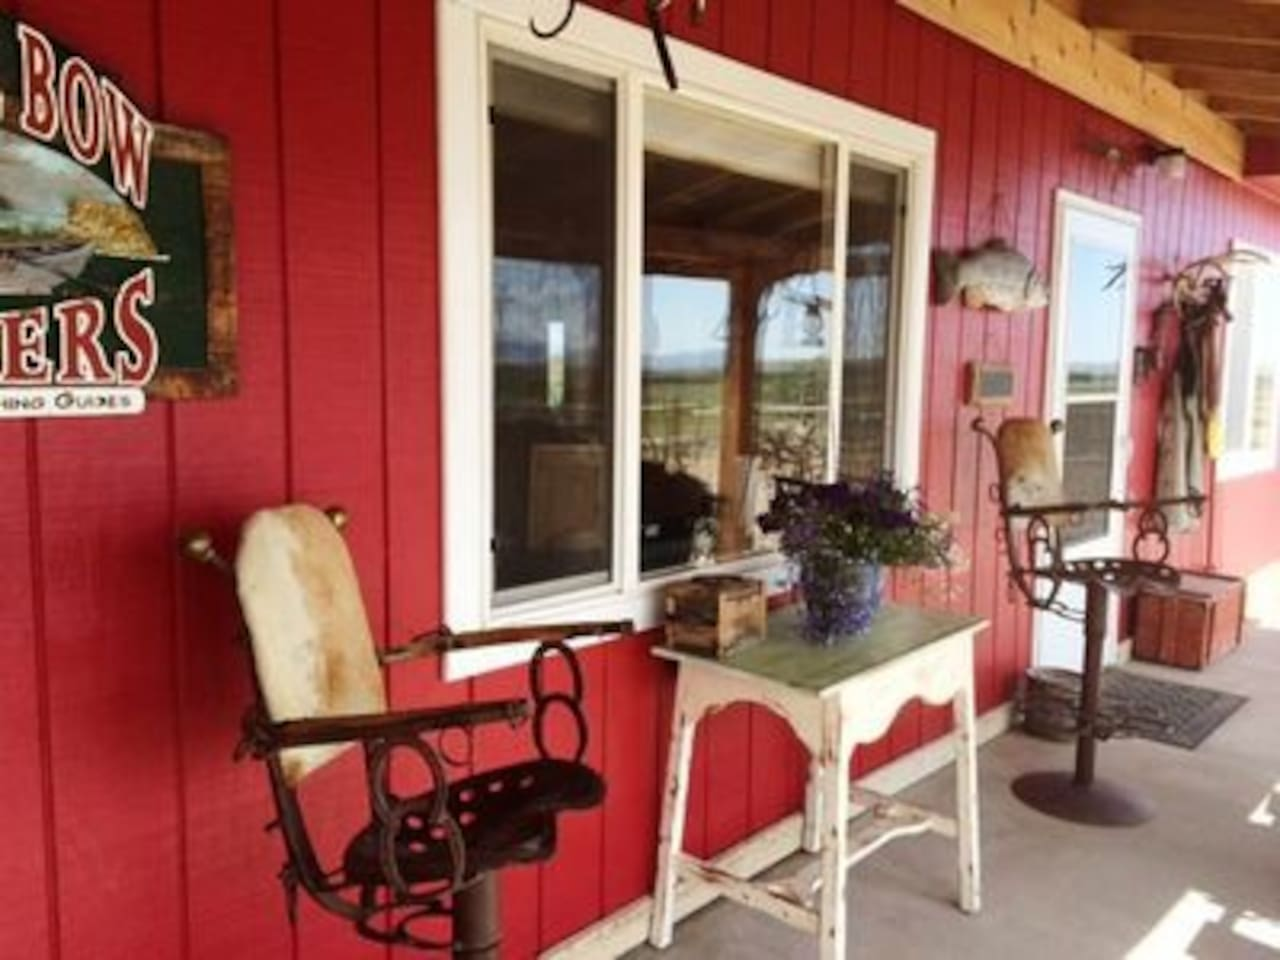 Western front porch with swing